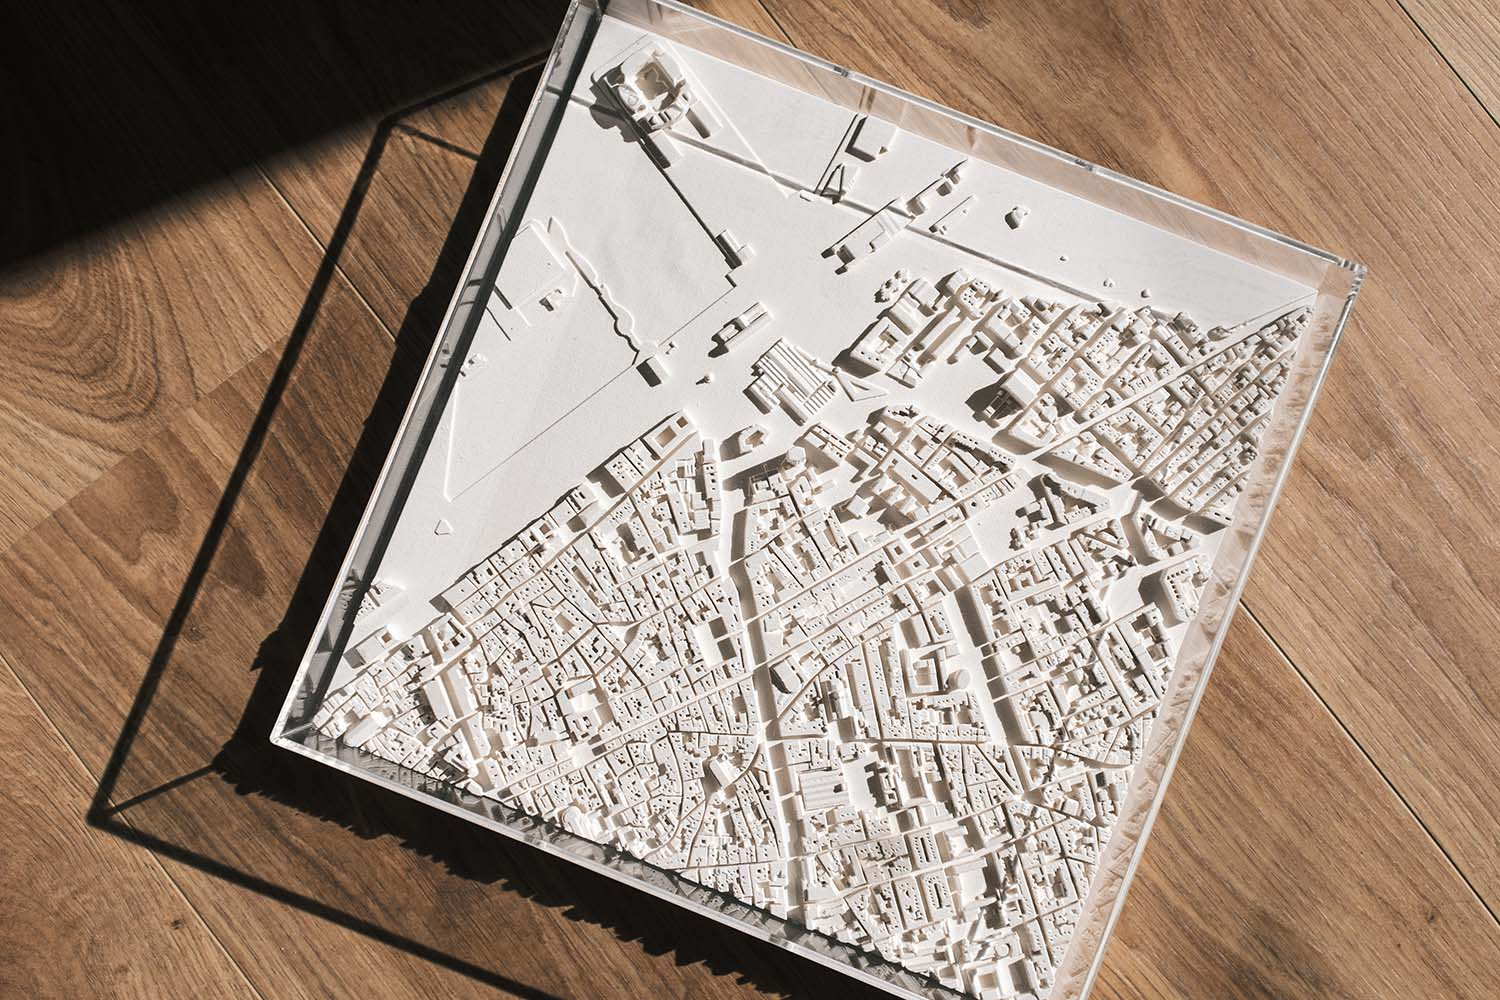 Chisel & Mouse Cityscapes Collection, Digital Handmade Architectural Sculptures